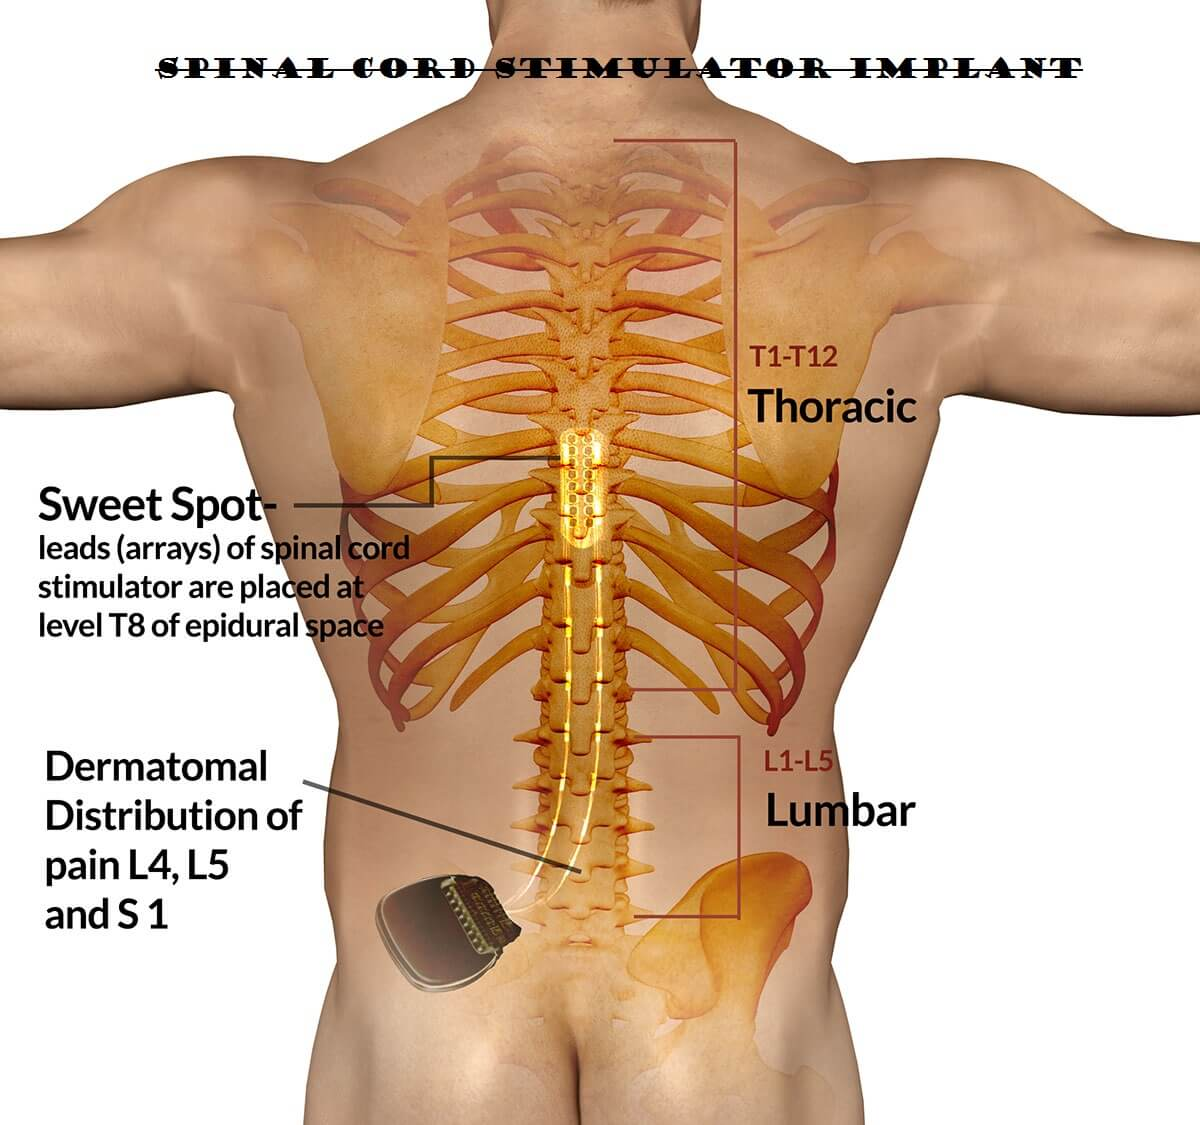 Spinal Cord Stimulator Implant - Health Supplements